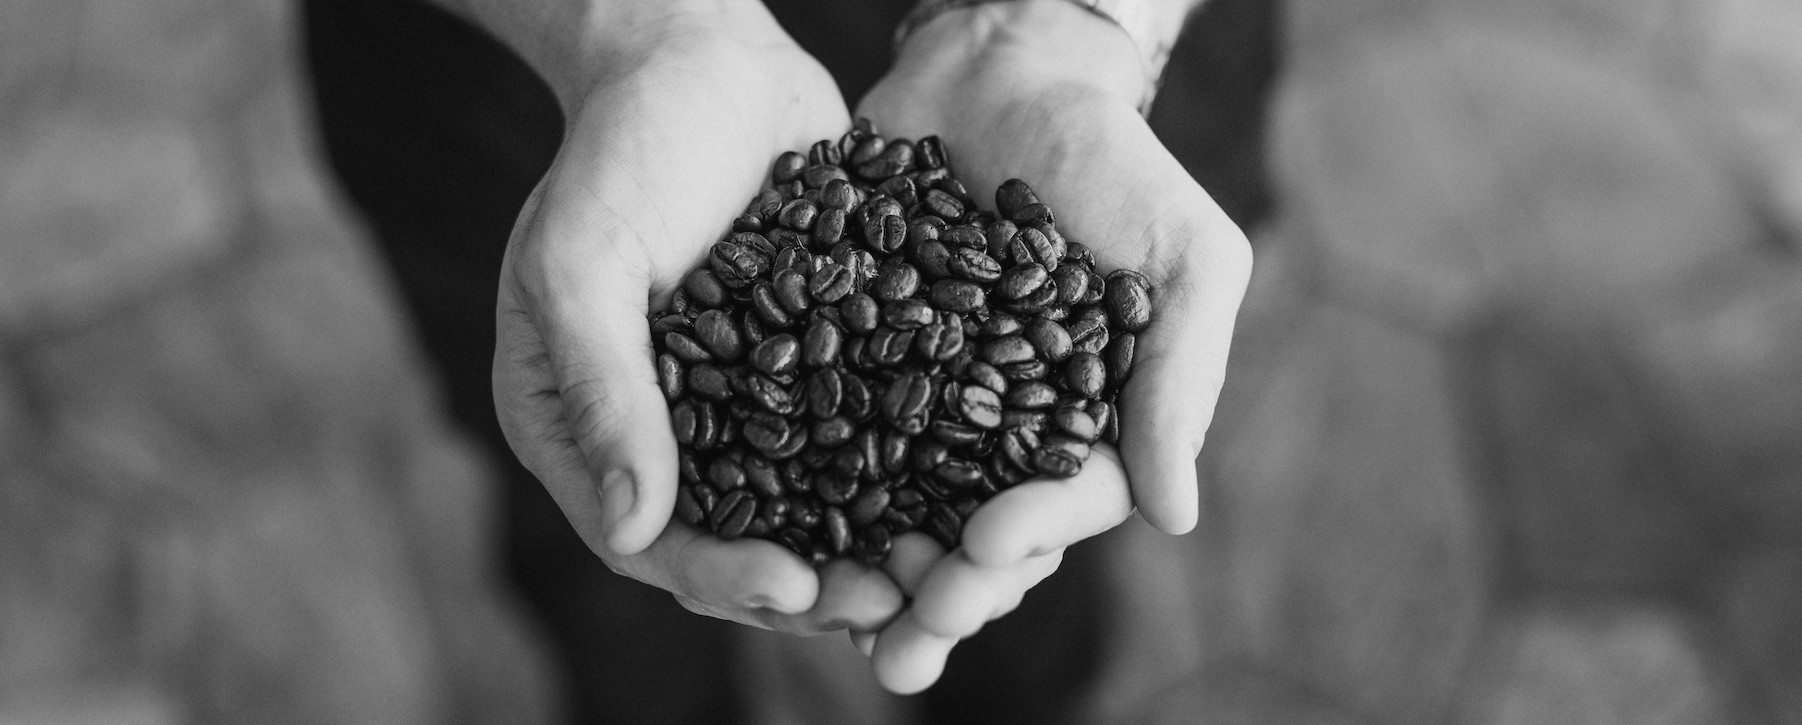 Roasted coffee beans in hands 3